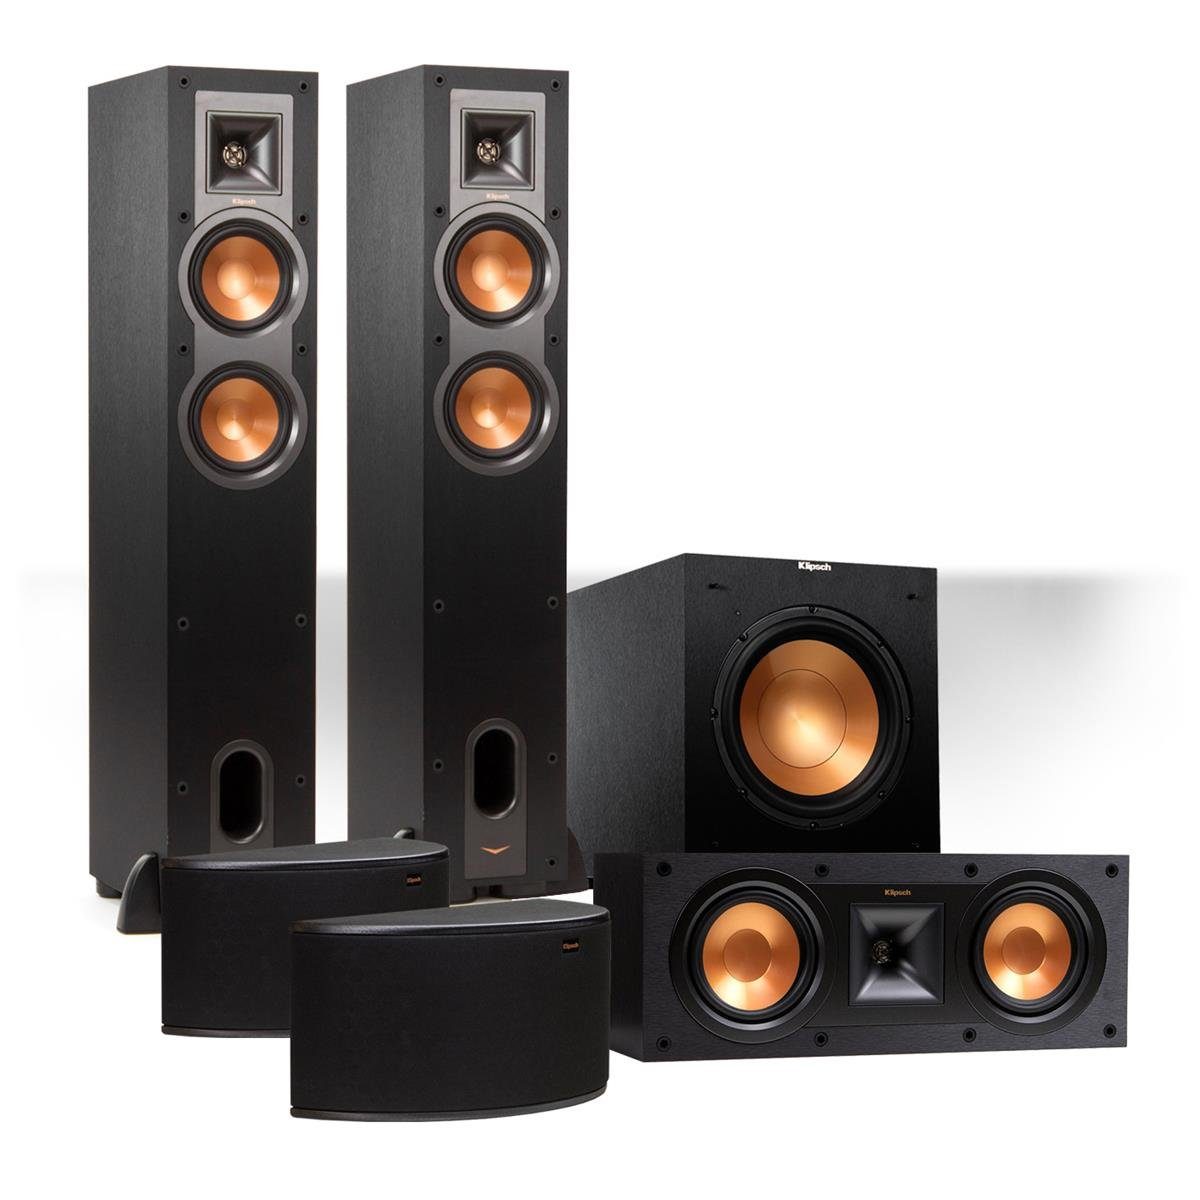 Klipsch Reference 5.1 Channel R-24F Surround Home Theater Speaker Bundle with 12'' Subwoofer (Black) by Klipsch